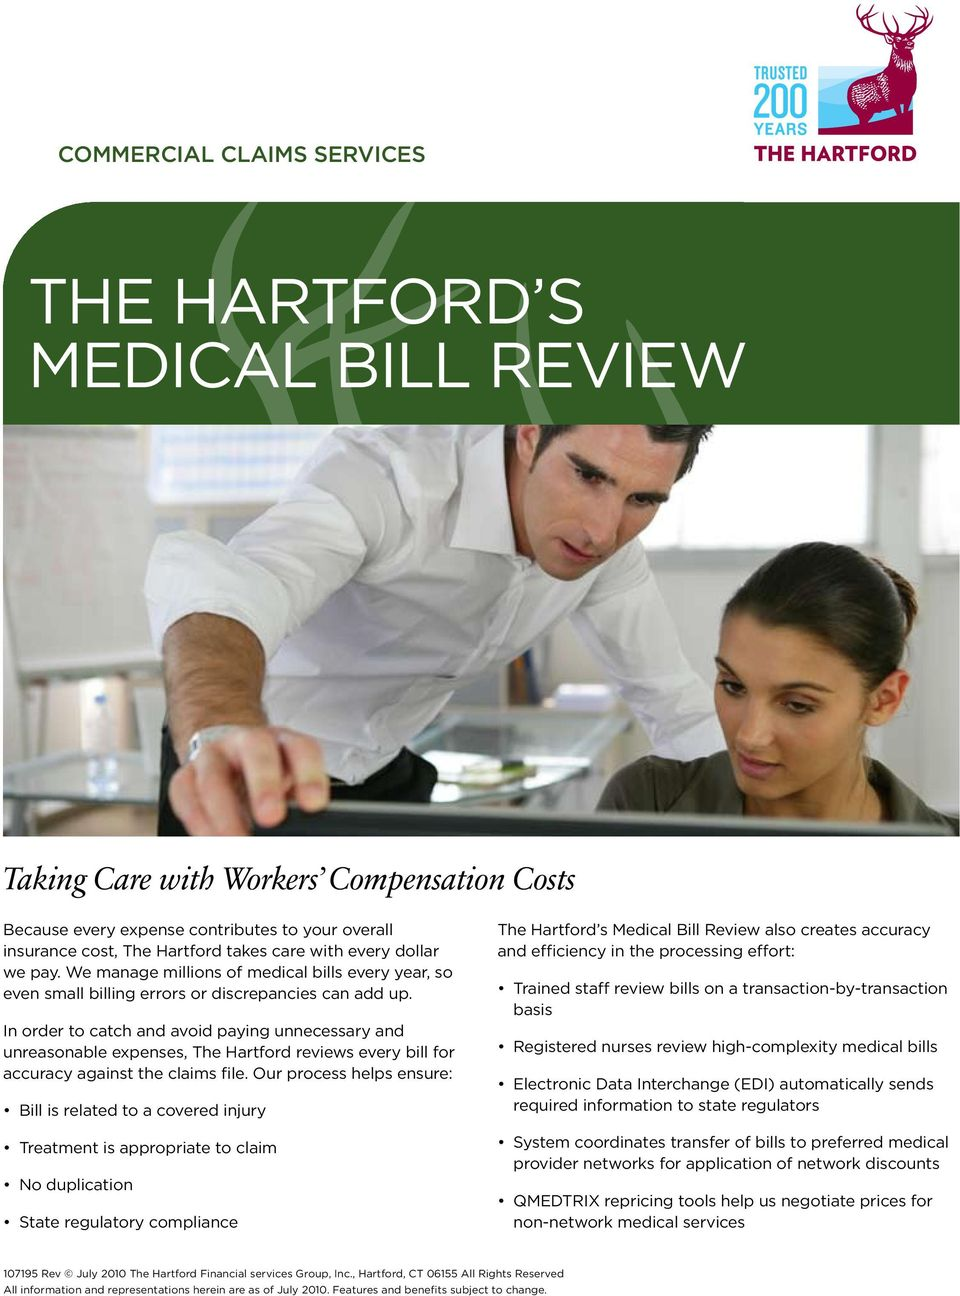 In order to catch and avoid paying unnecessary and unreasonable expenses, The Hartford reviews every bill for accuracy against the claims file.